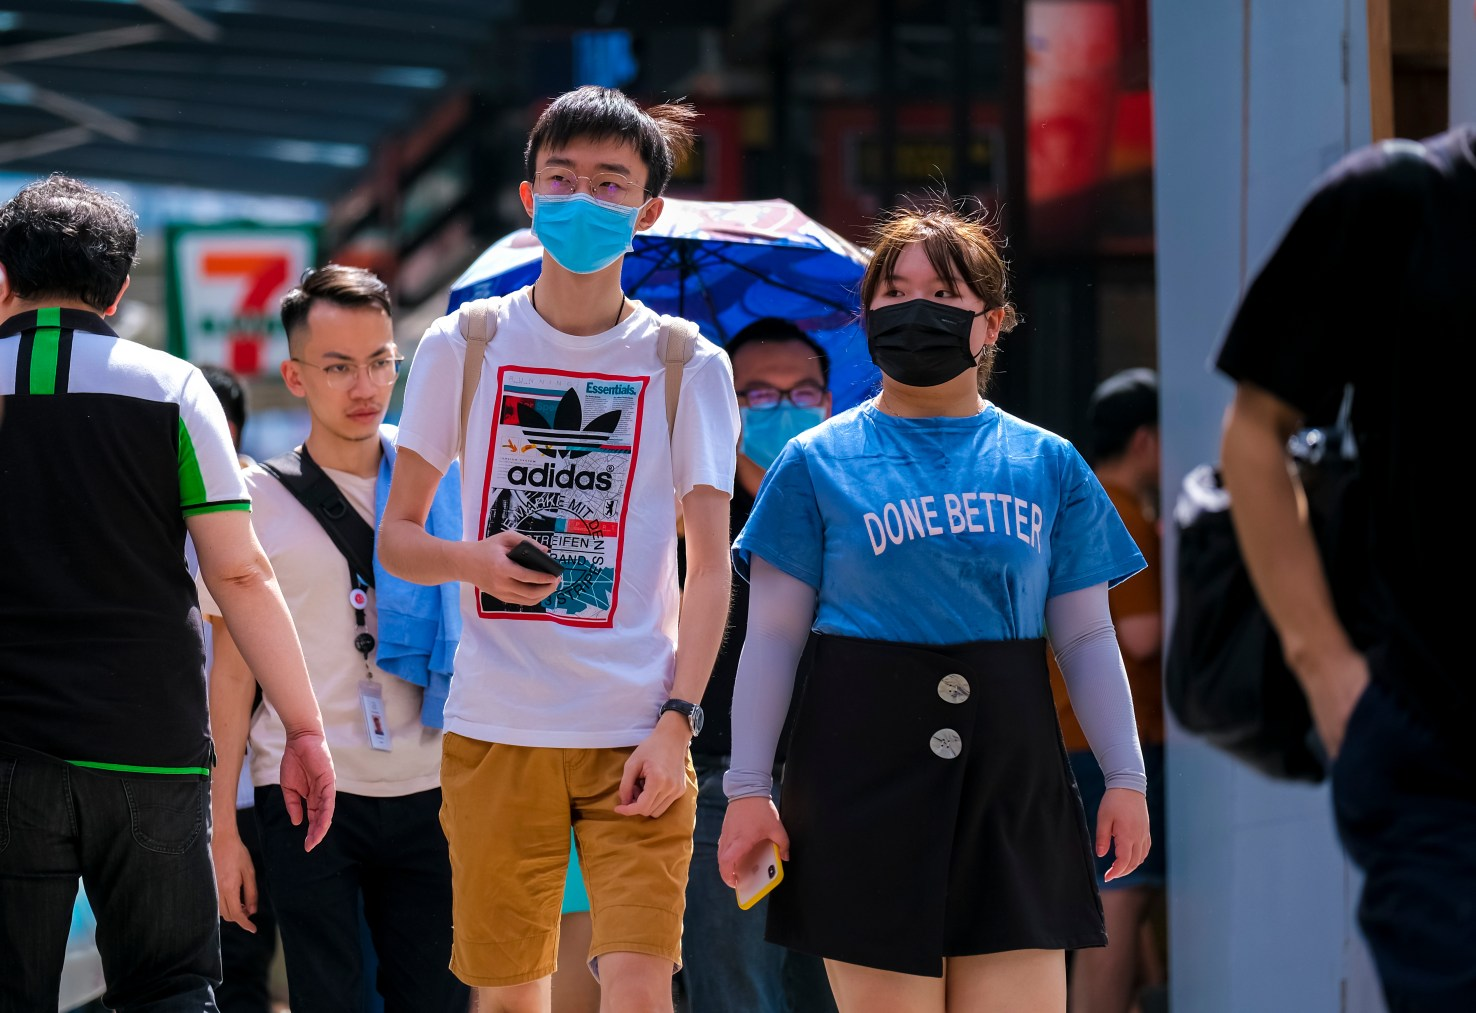 KUALA LUMPUR, MALAYSIA - FEBRUARY 22, 2020 : People wearing face mask to prevent infection of virus at Bukit Bintang. Bukit Bintang is a famous tourist attraction place.